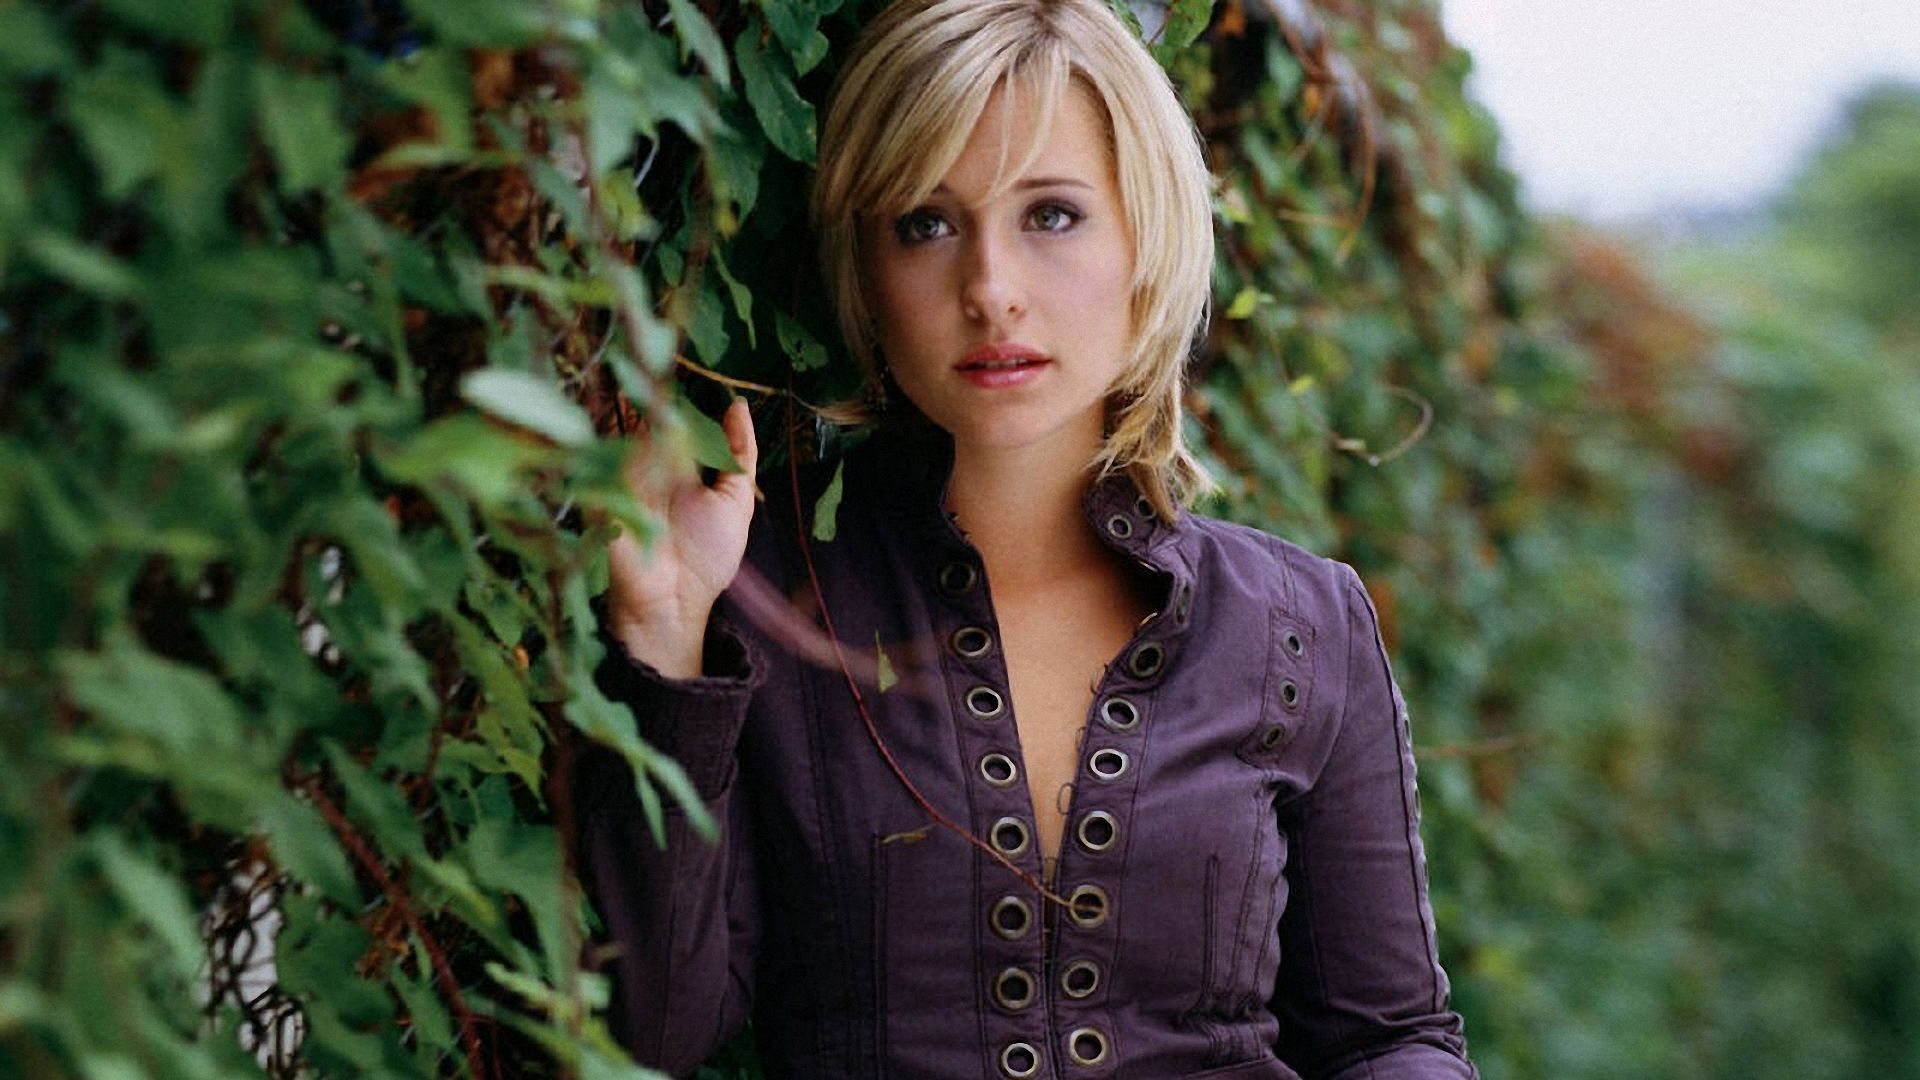 ... allison-mack-wallpapers-free ...